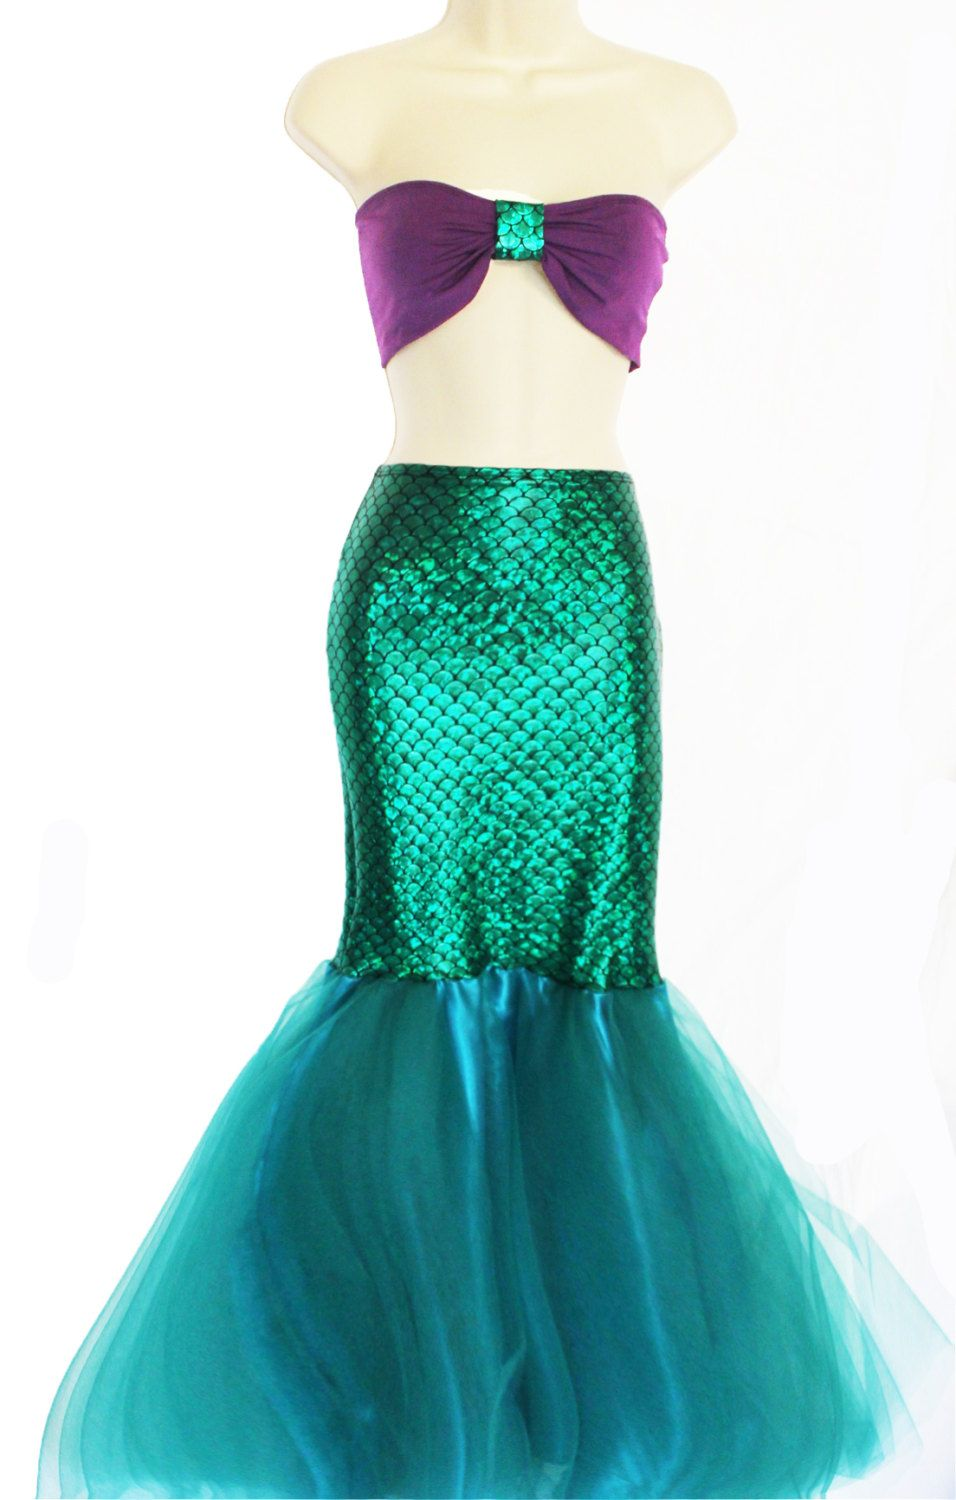 Mermaid Princess Adult Tail